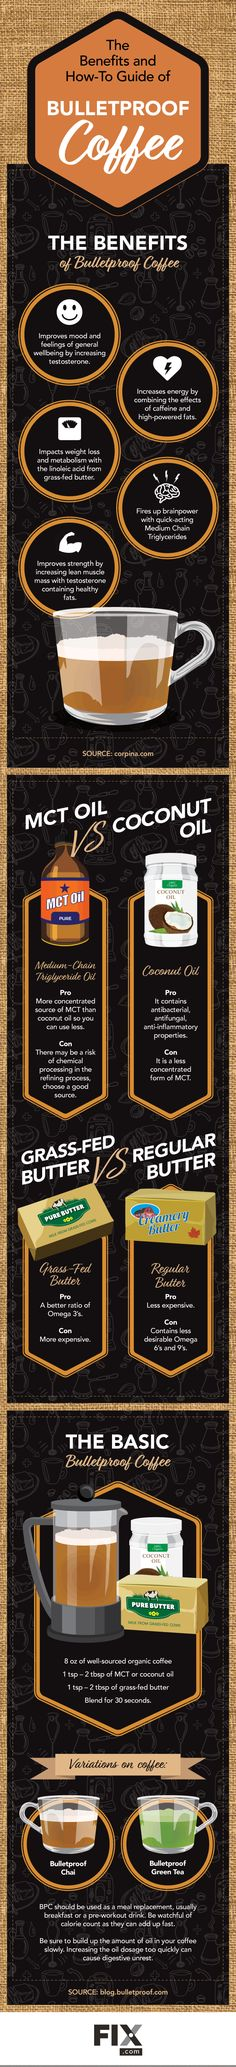 Bulletproof coffee can add healthy fat to your diet, help increase your energy, and stimulate your brainpower!